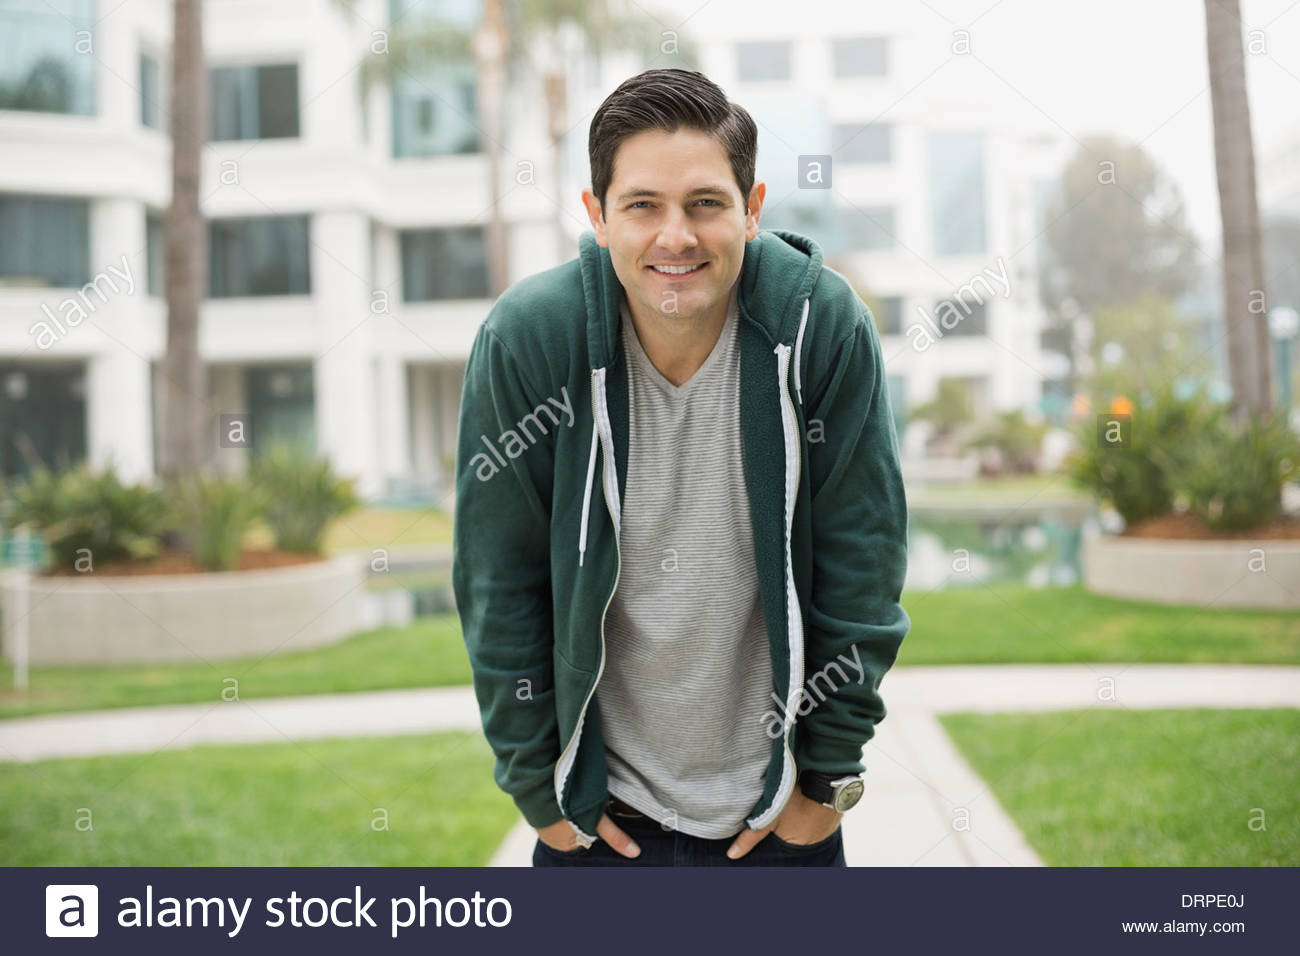 3c2c950a522b Hands In Pocket Stock Photos   Hands In Pocket Stock Images - Alamy